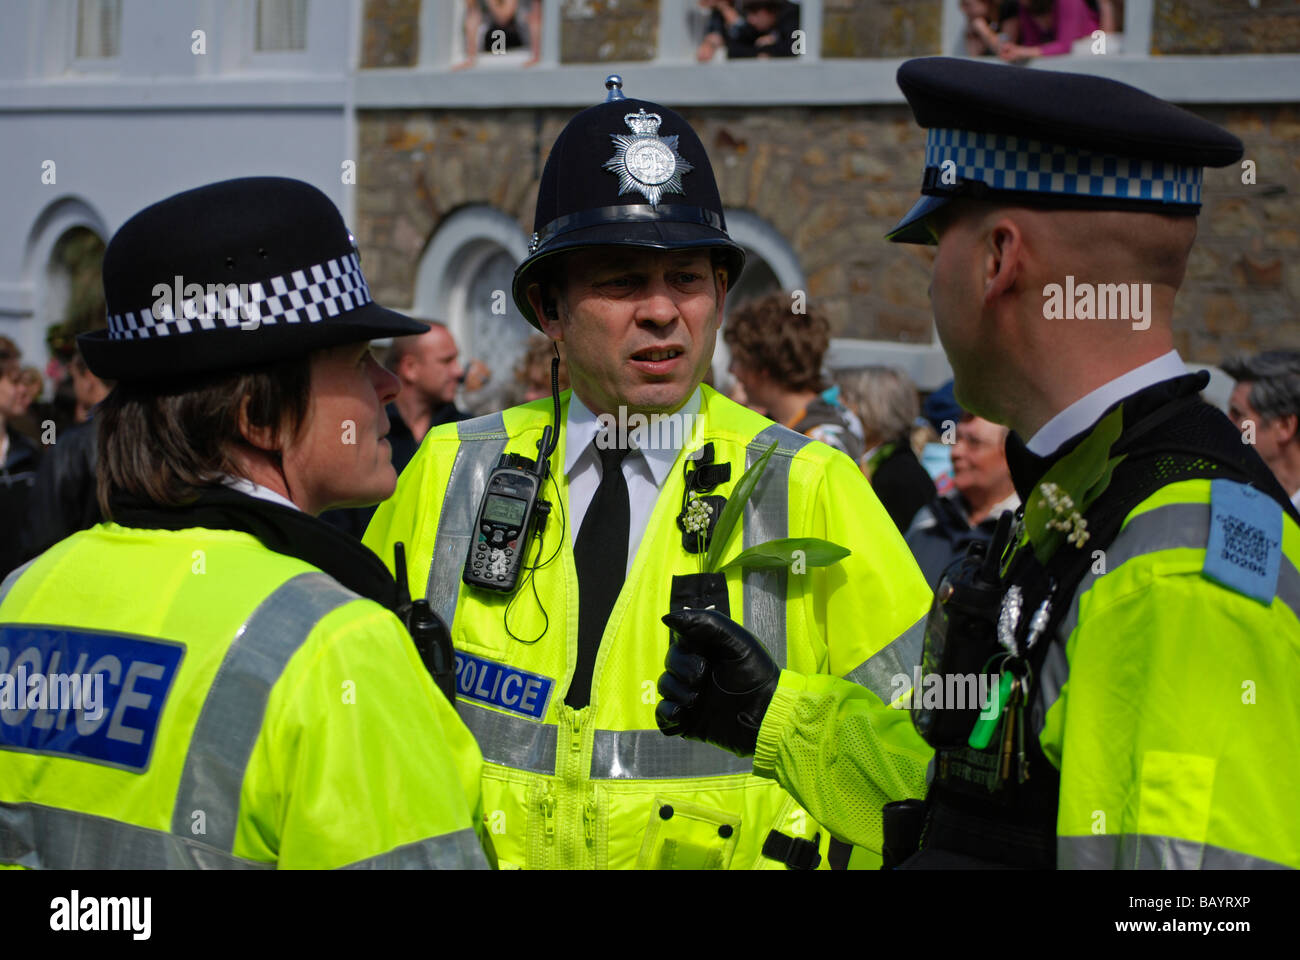 british police on crowd control duty at the helston flora day,helston,cornwall,uk - Stock Image